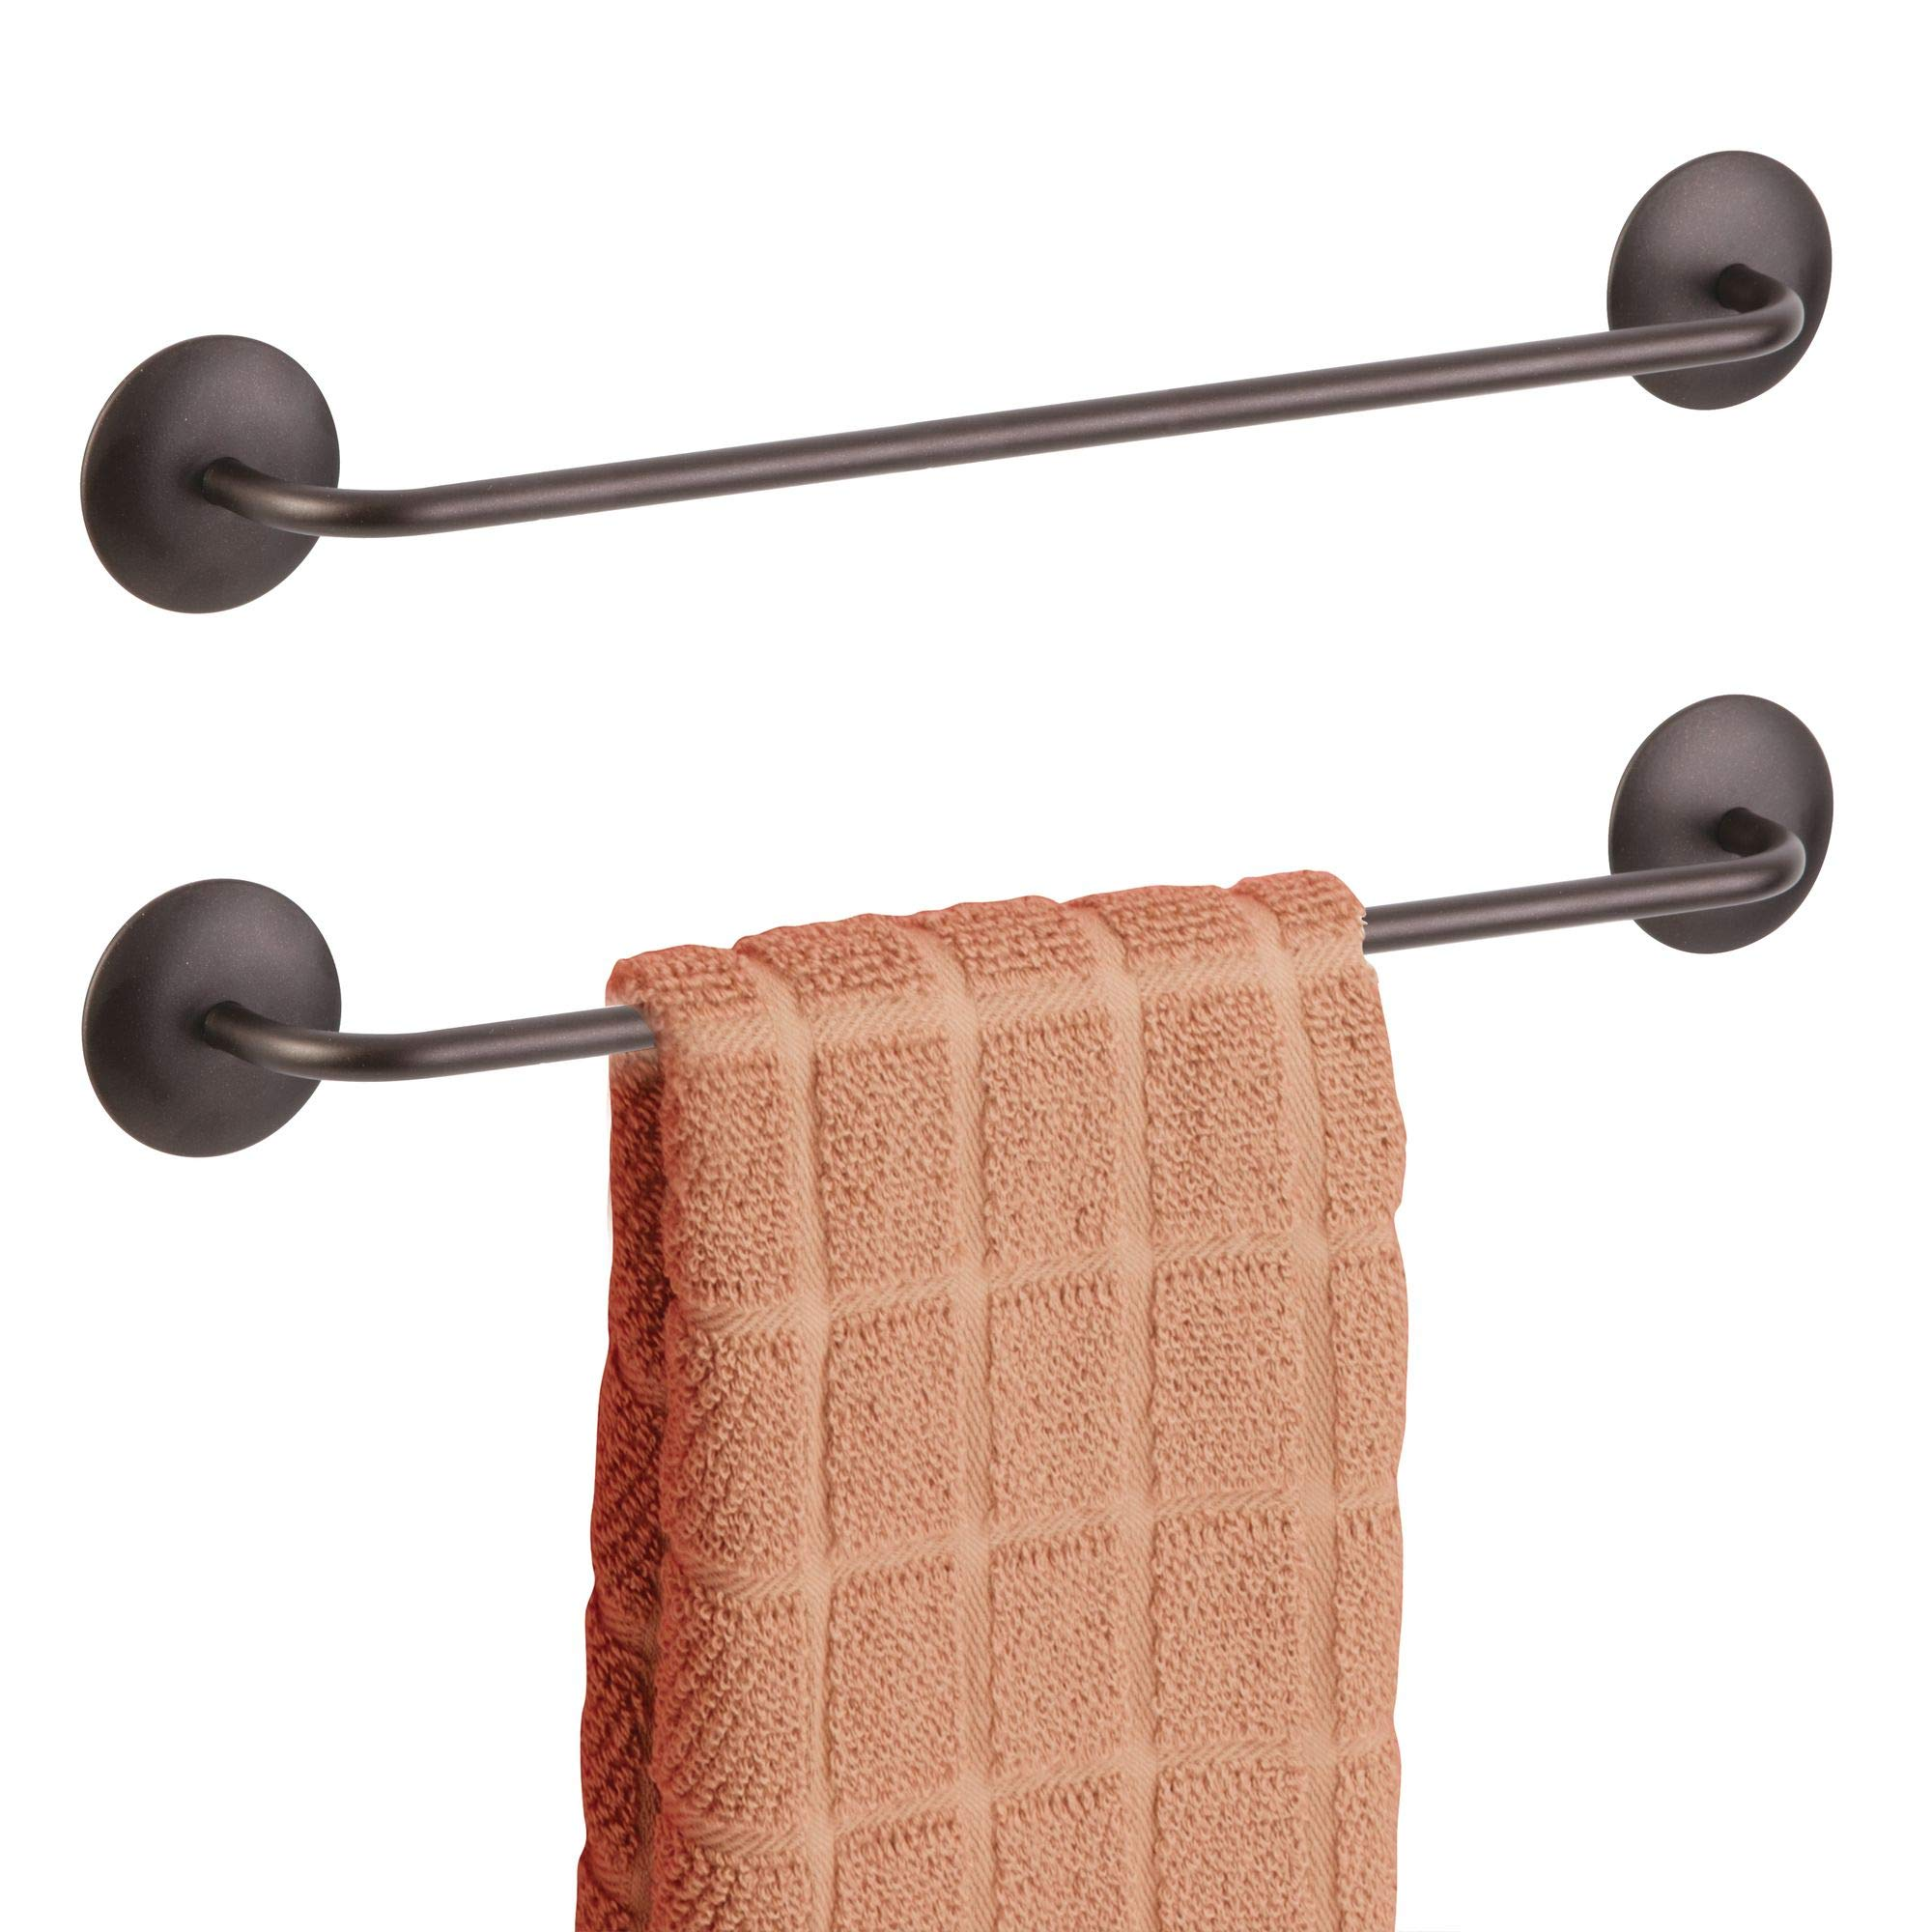 mDesign AFFIXX Peel-and-Stick Self-Adhesive Small Single Metal Wall Mounting Hanging Kitchen Cabinet Dish Drying Hand and Tea Towels Holder Bar - Pack of 2, 13'', Bronze